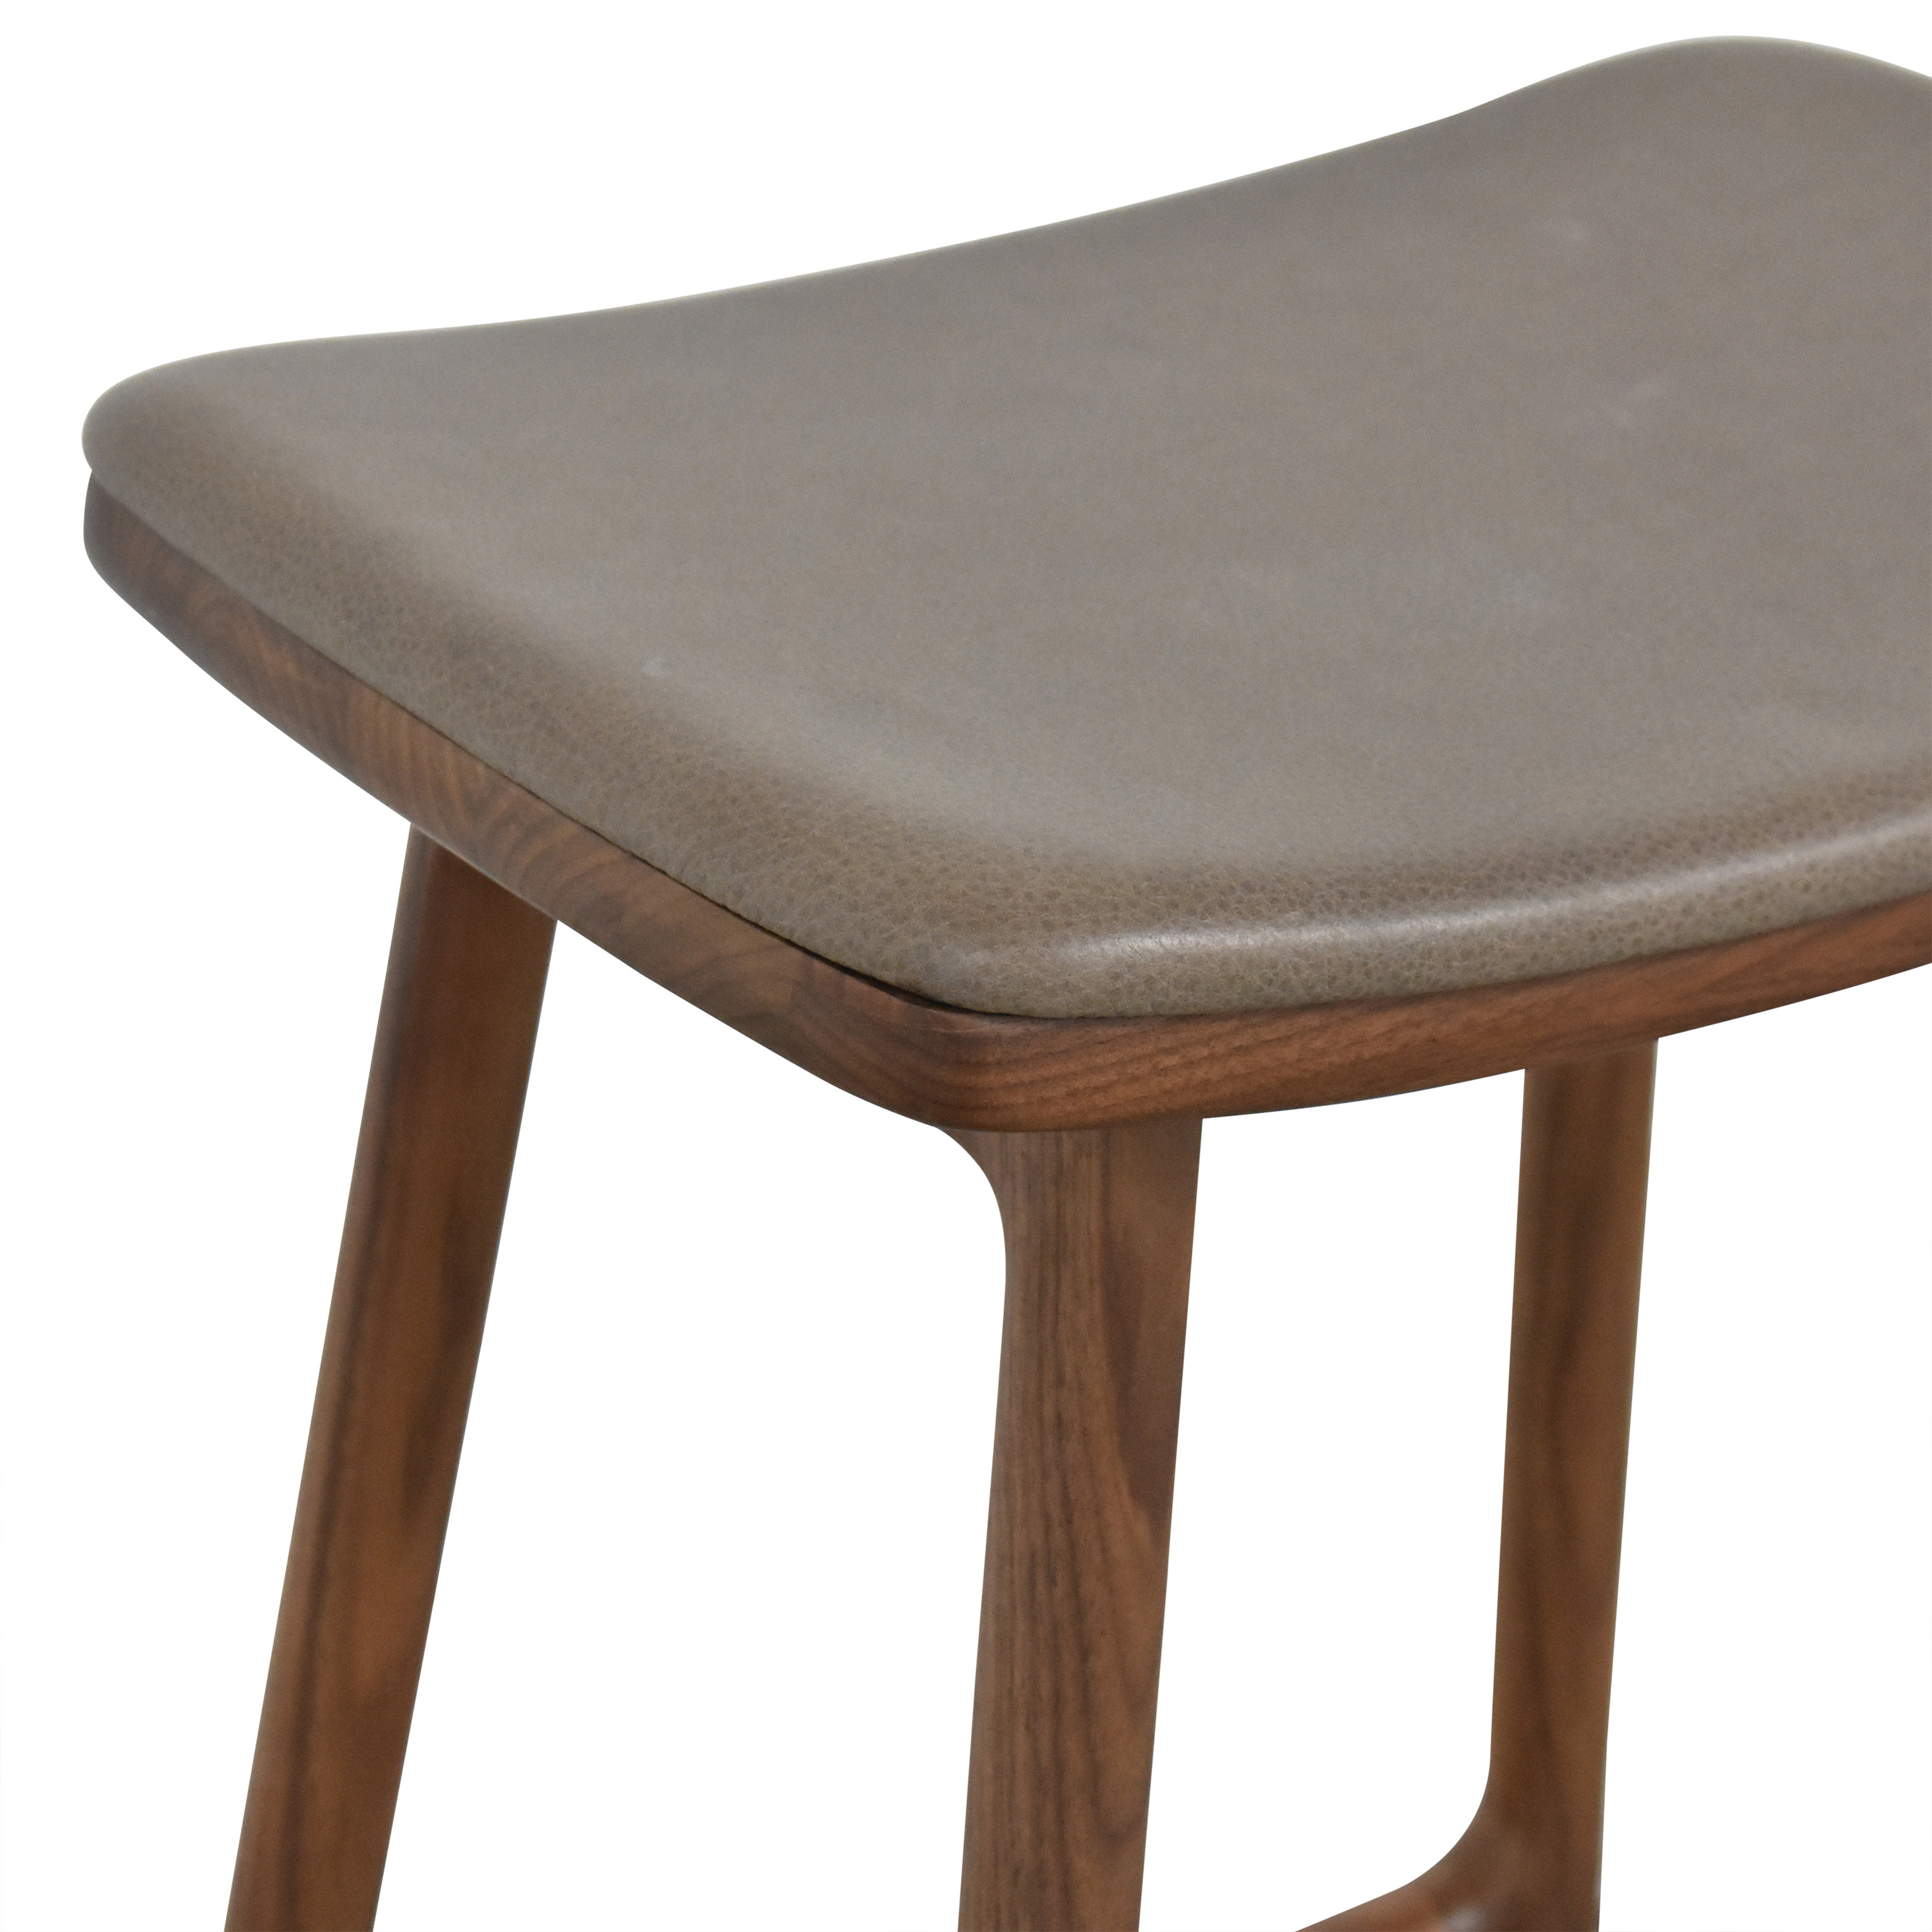 buy Article Article Esse Canyon Counter Stools online